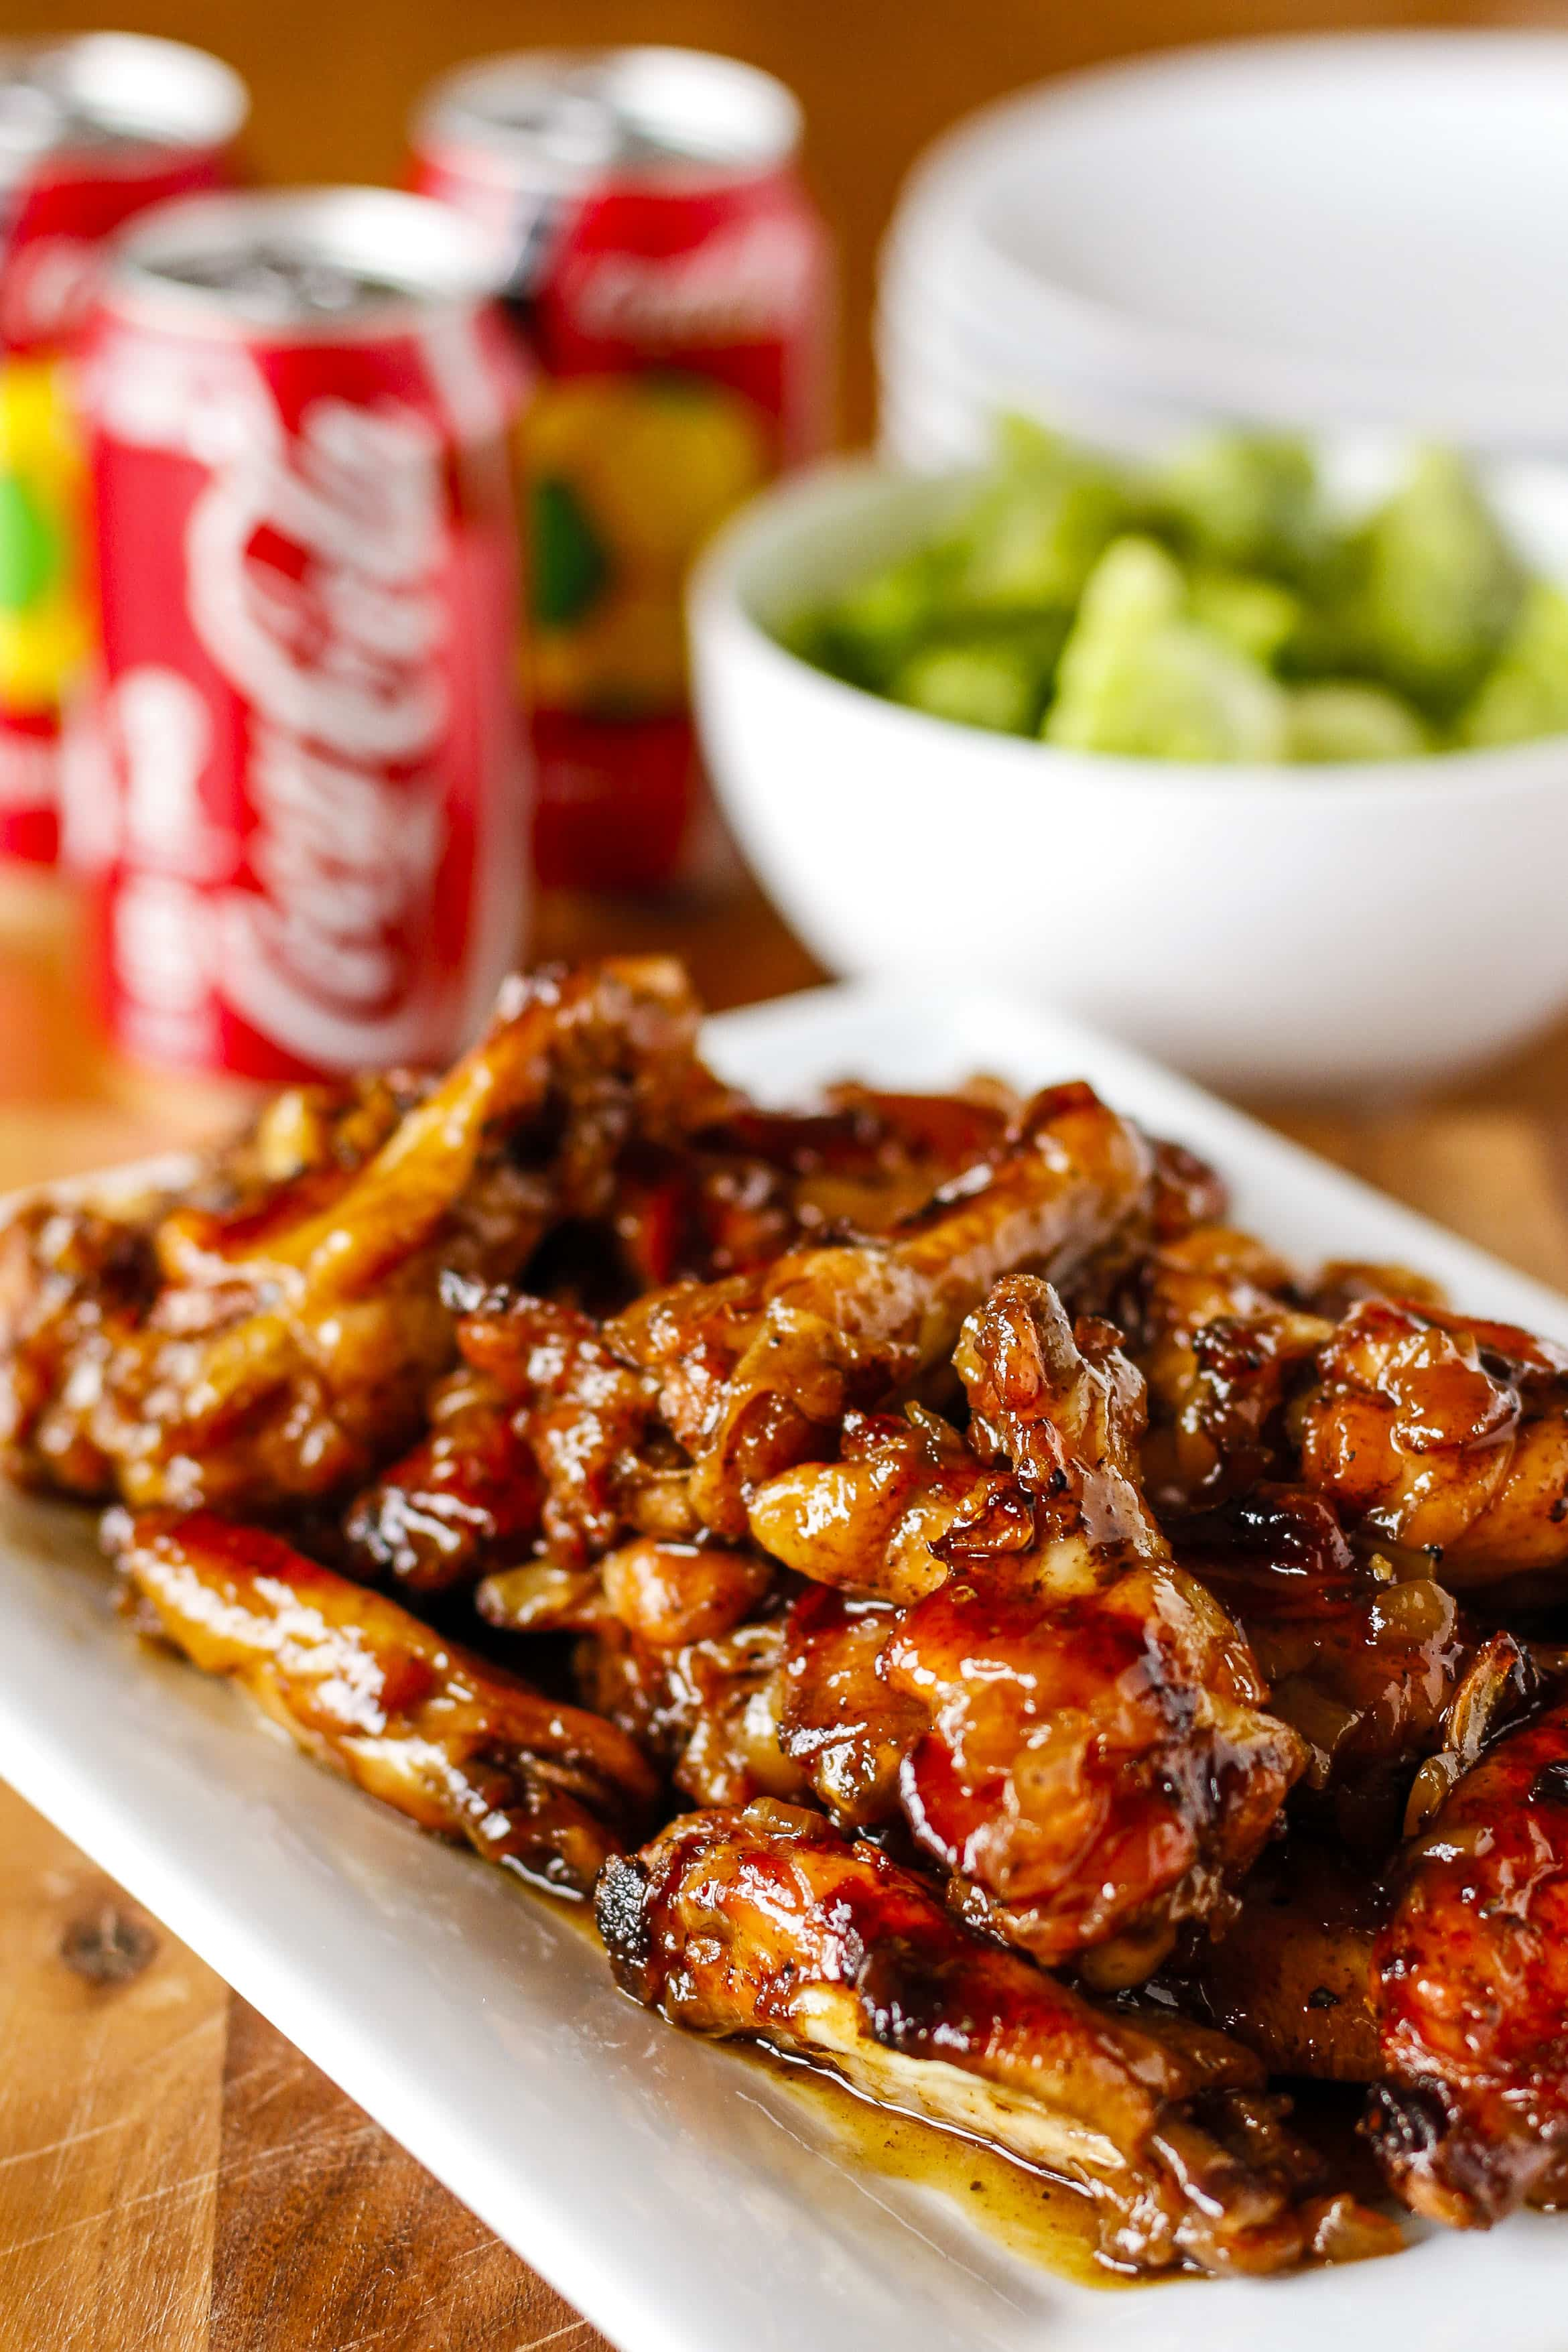 Baked Chicken Wings -- don't miss these crispy Coca-Cola baked chicken wings smothered in a delicious sweet and tangy sauce, PERFECT for game day and beyond! | unsophisticook.com